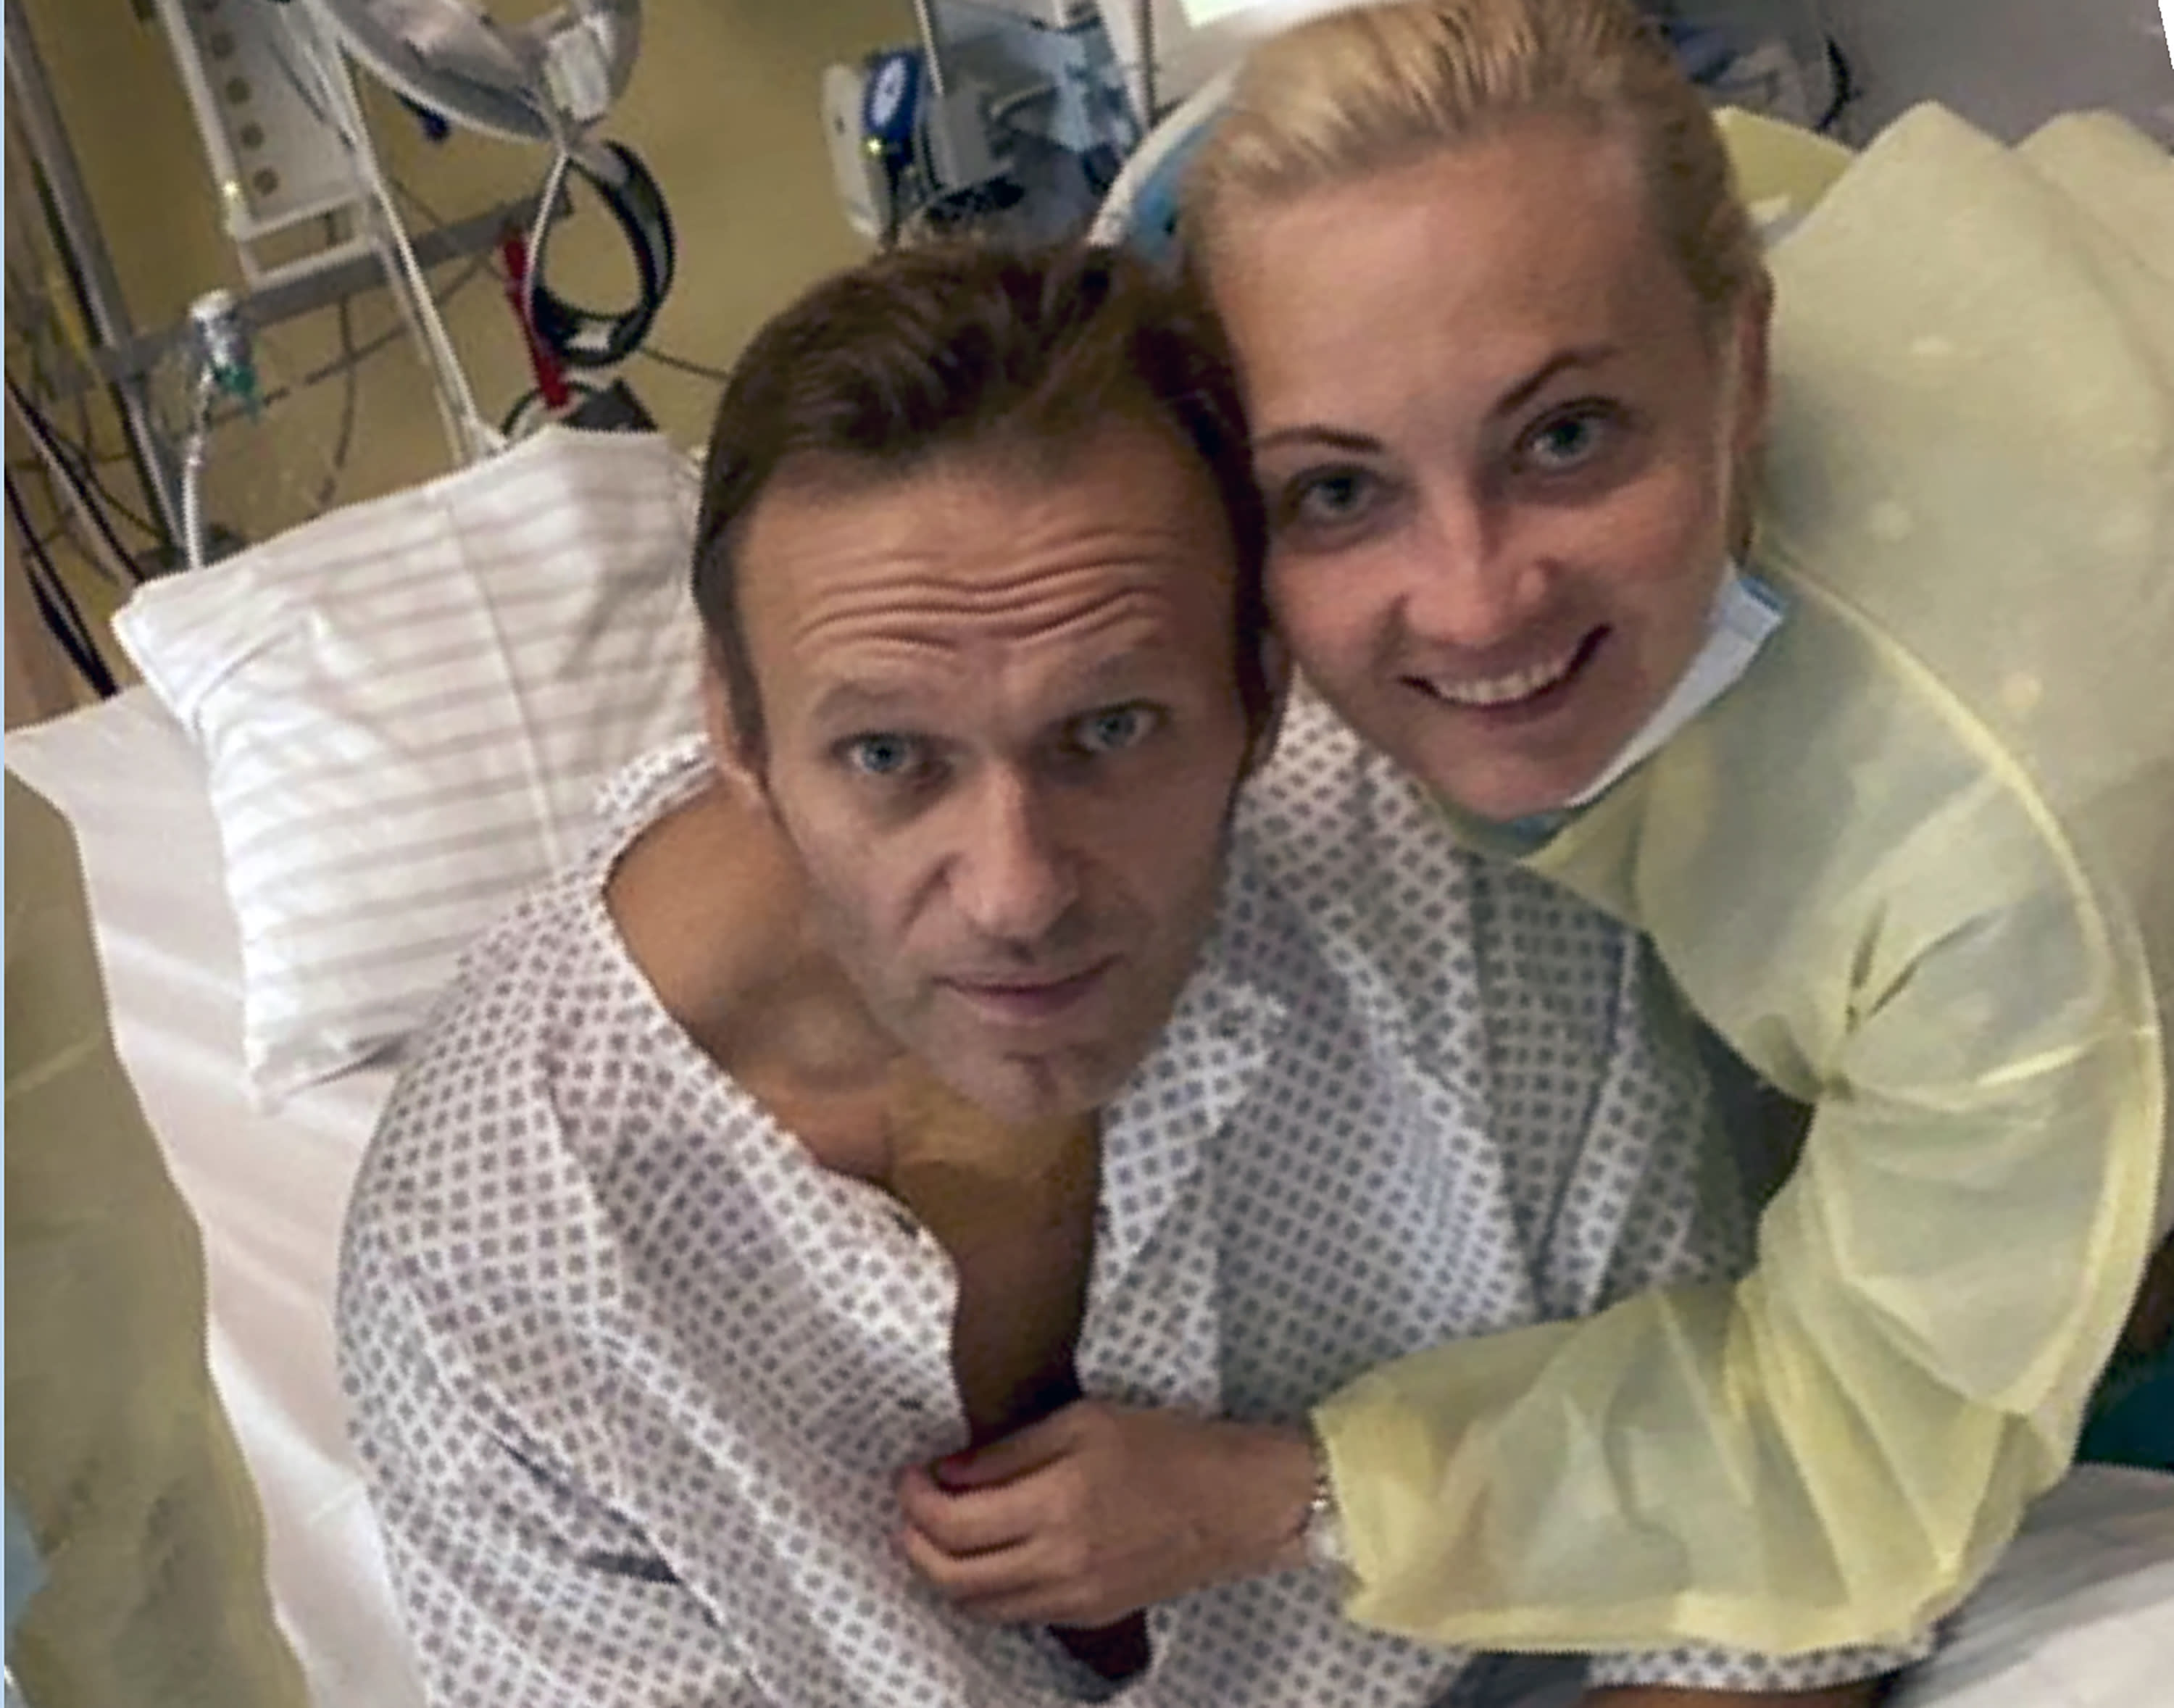 """This handout photo published by Russian opposition leader Alexei Navalny on his instagram account, shows himself and his wife Yulia, posing for a photo in a hospital in Berlin, Germany. Russian opposition leader Alexei Navalny has posted the picture Tuesday Sept. 15, 2020, with the caption """"Hi, this is Navalny. I have been missing you. I still can't do much, but yesterday I managed to breathe on my own for the entire day."""" (Navalny instagram via AP)"""